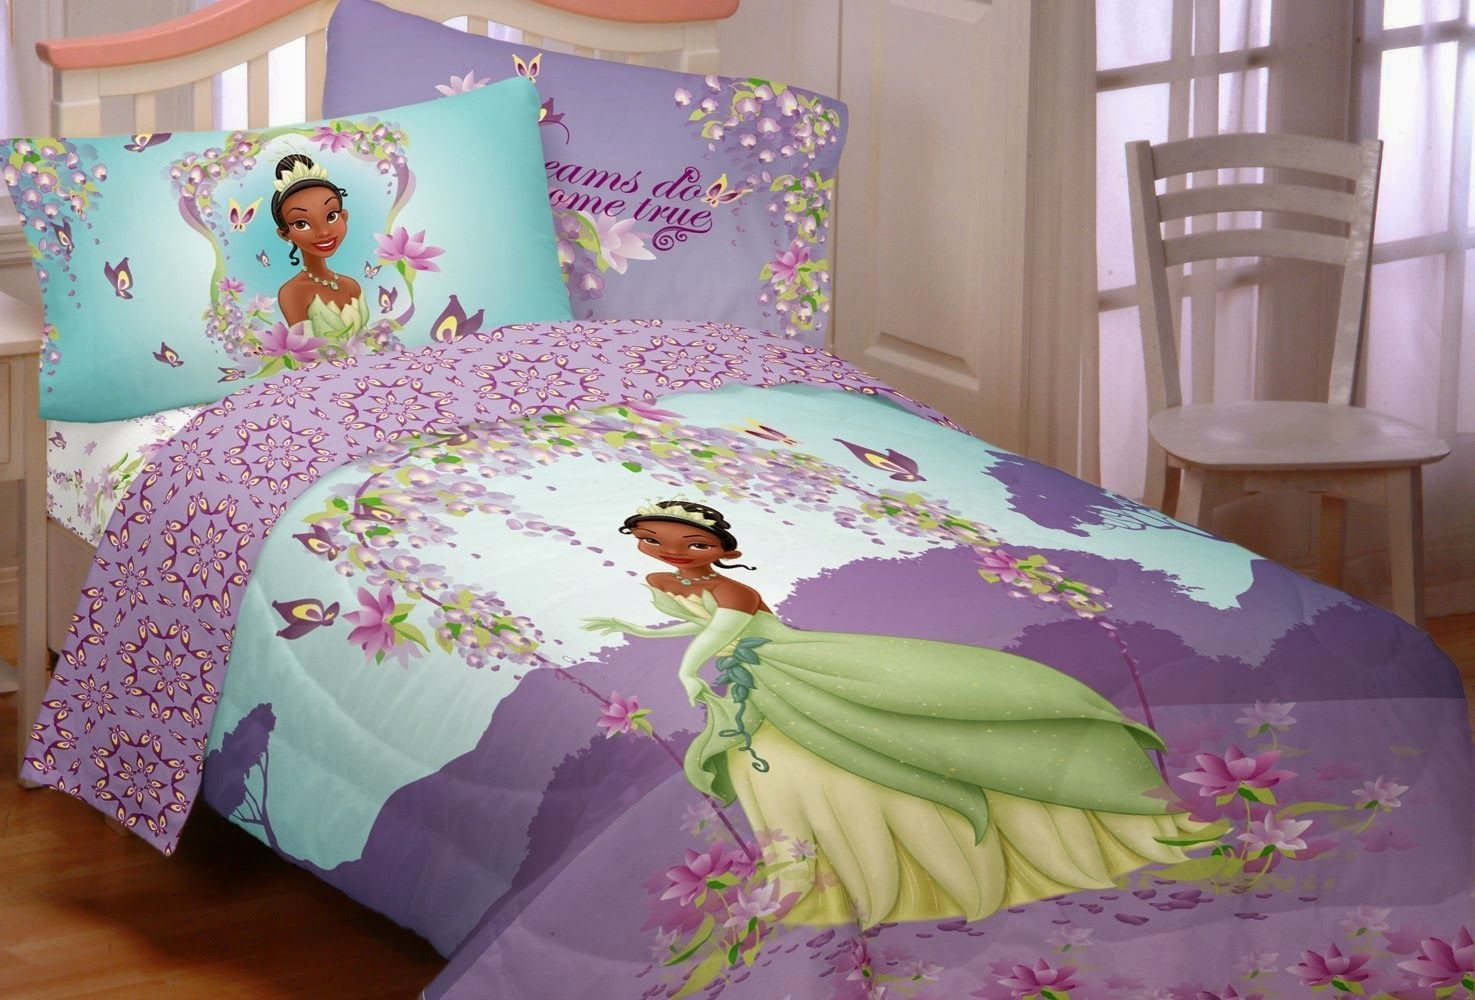 Bedroom decor ideas and designs how to decorate a disney for Princess themed bed